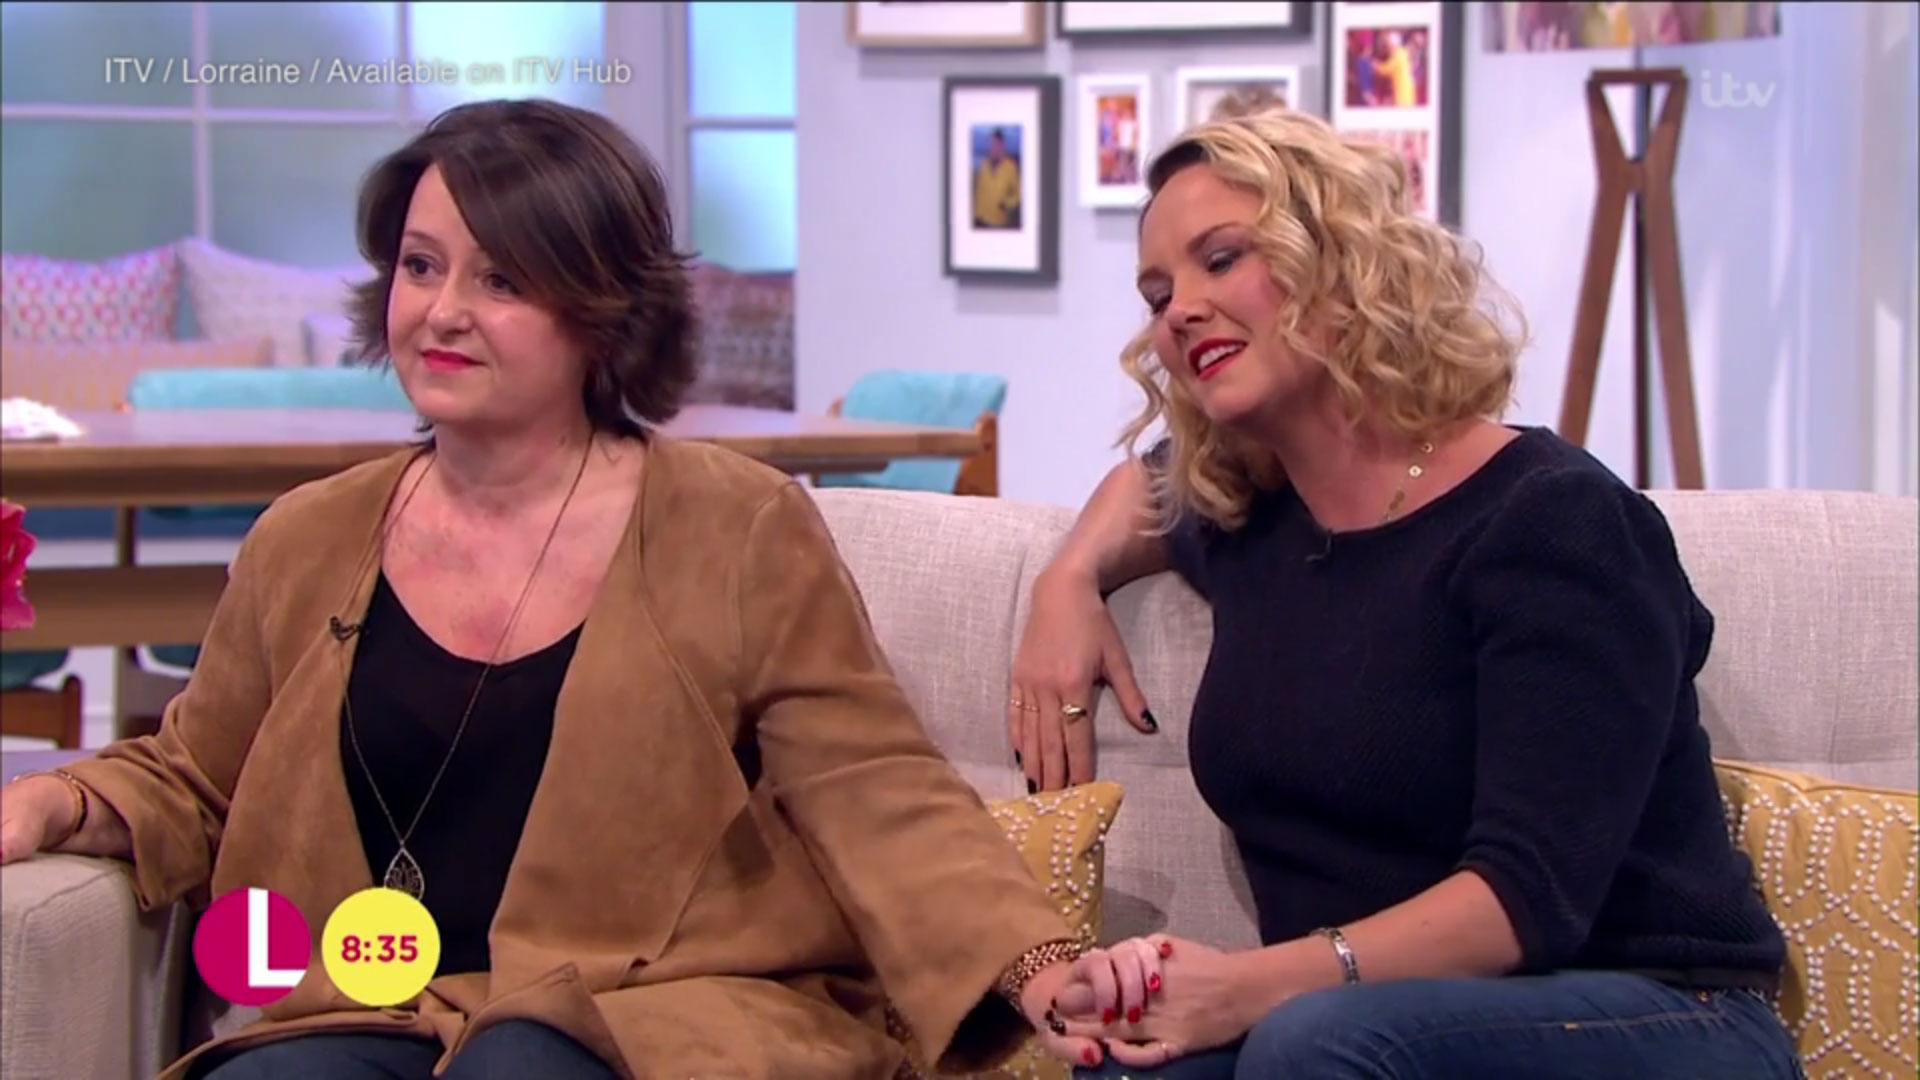 Eastenders' Charlie Brooks breaks down in tears discussing friend's battle with cancer